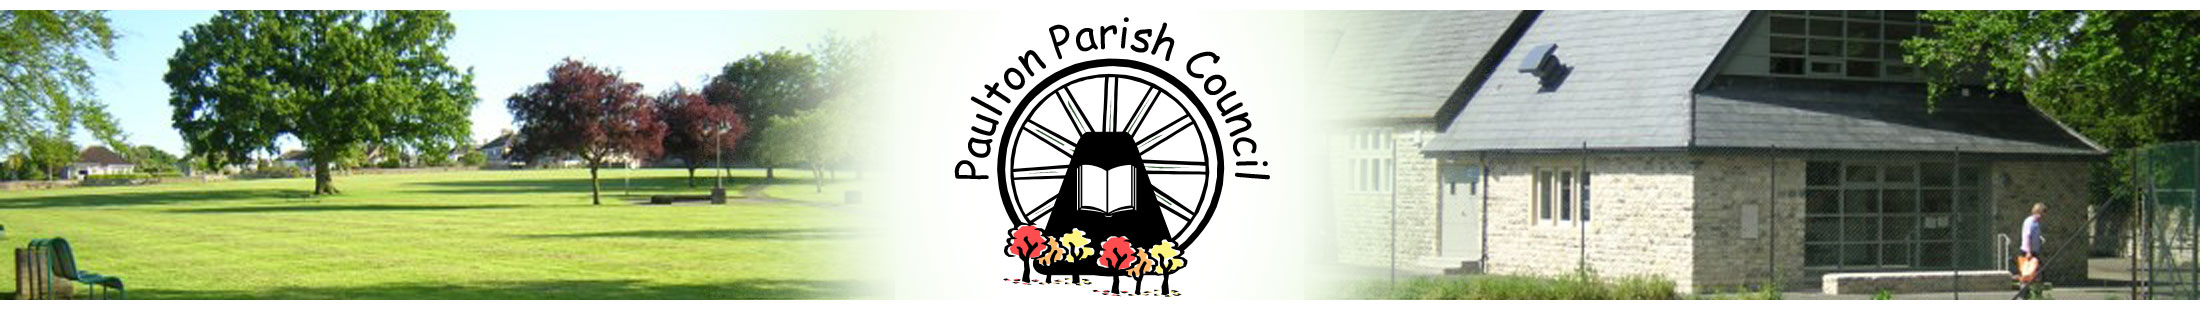 Header Image for Paulton Parish Council